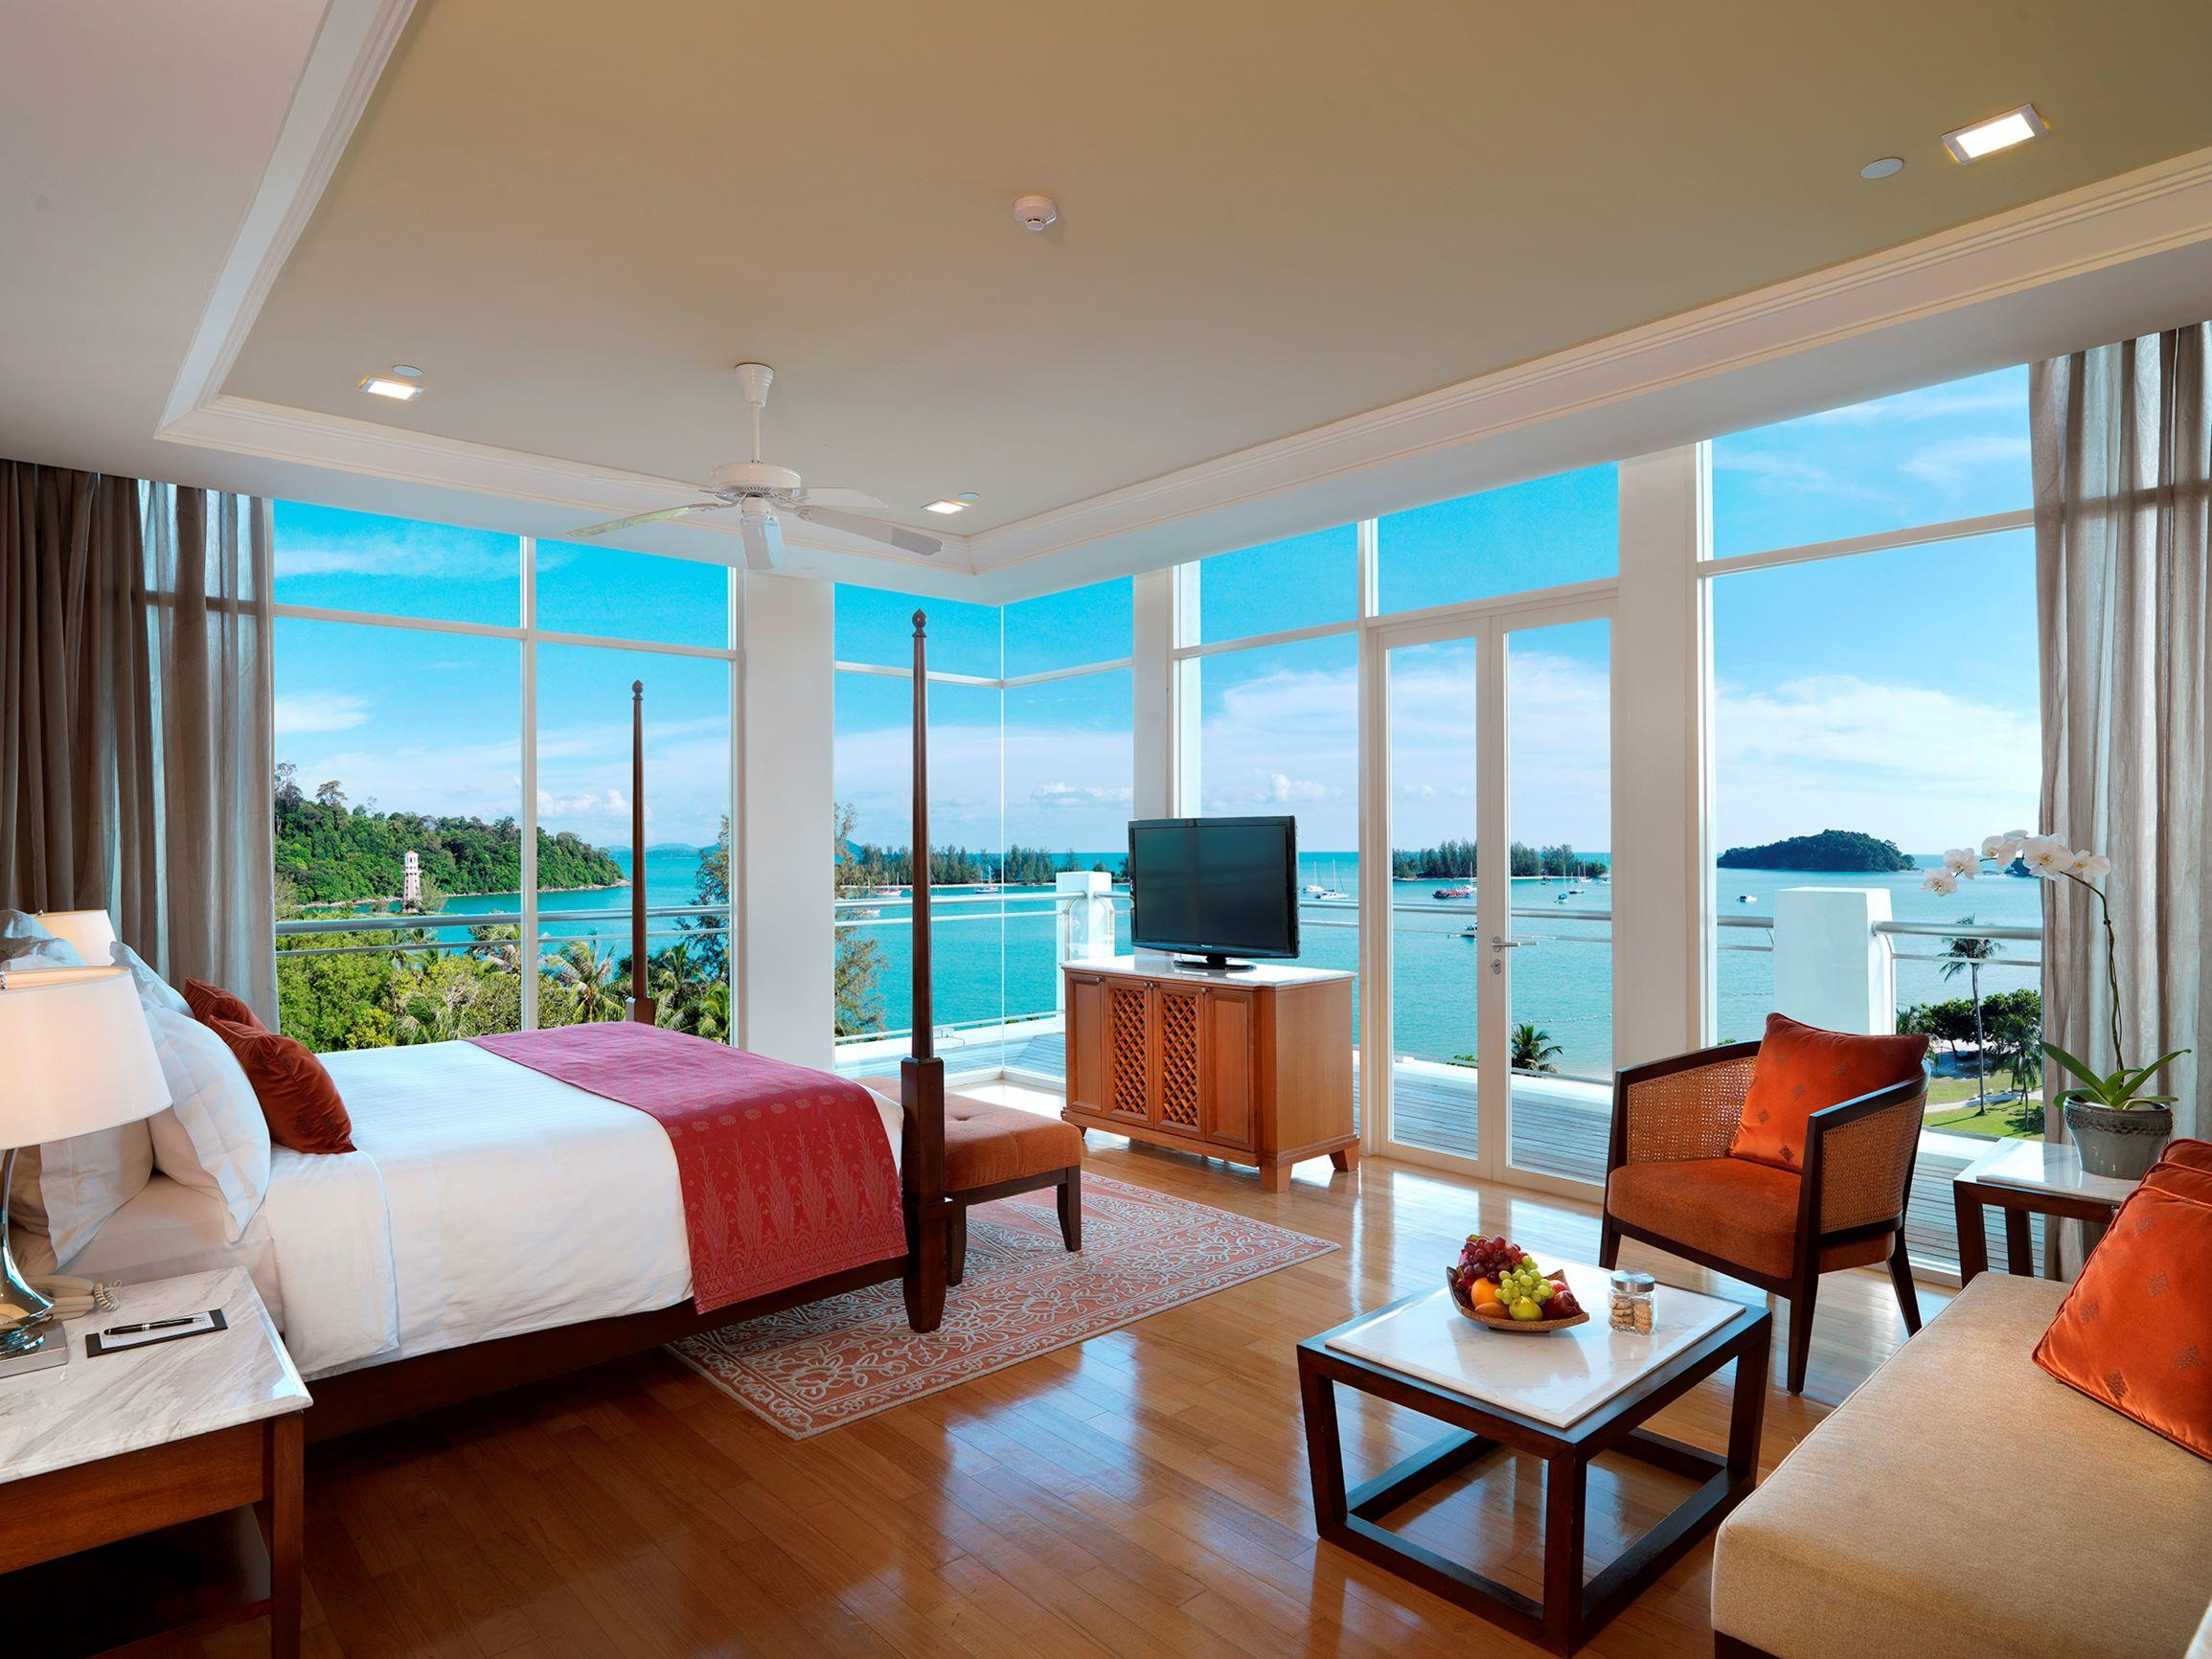 Bedroom with beautiful exterior view